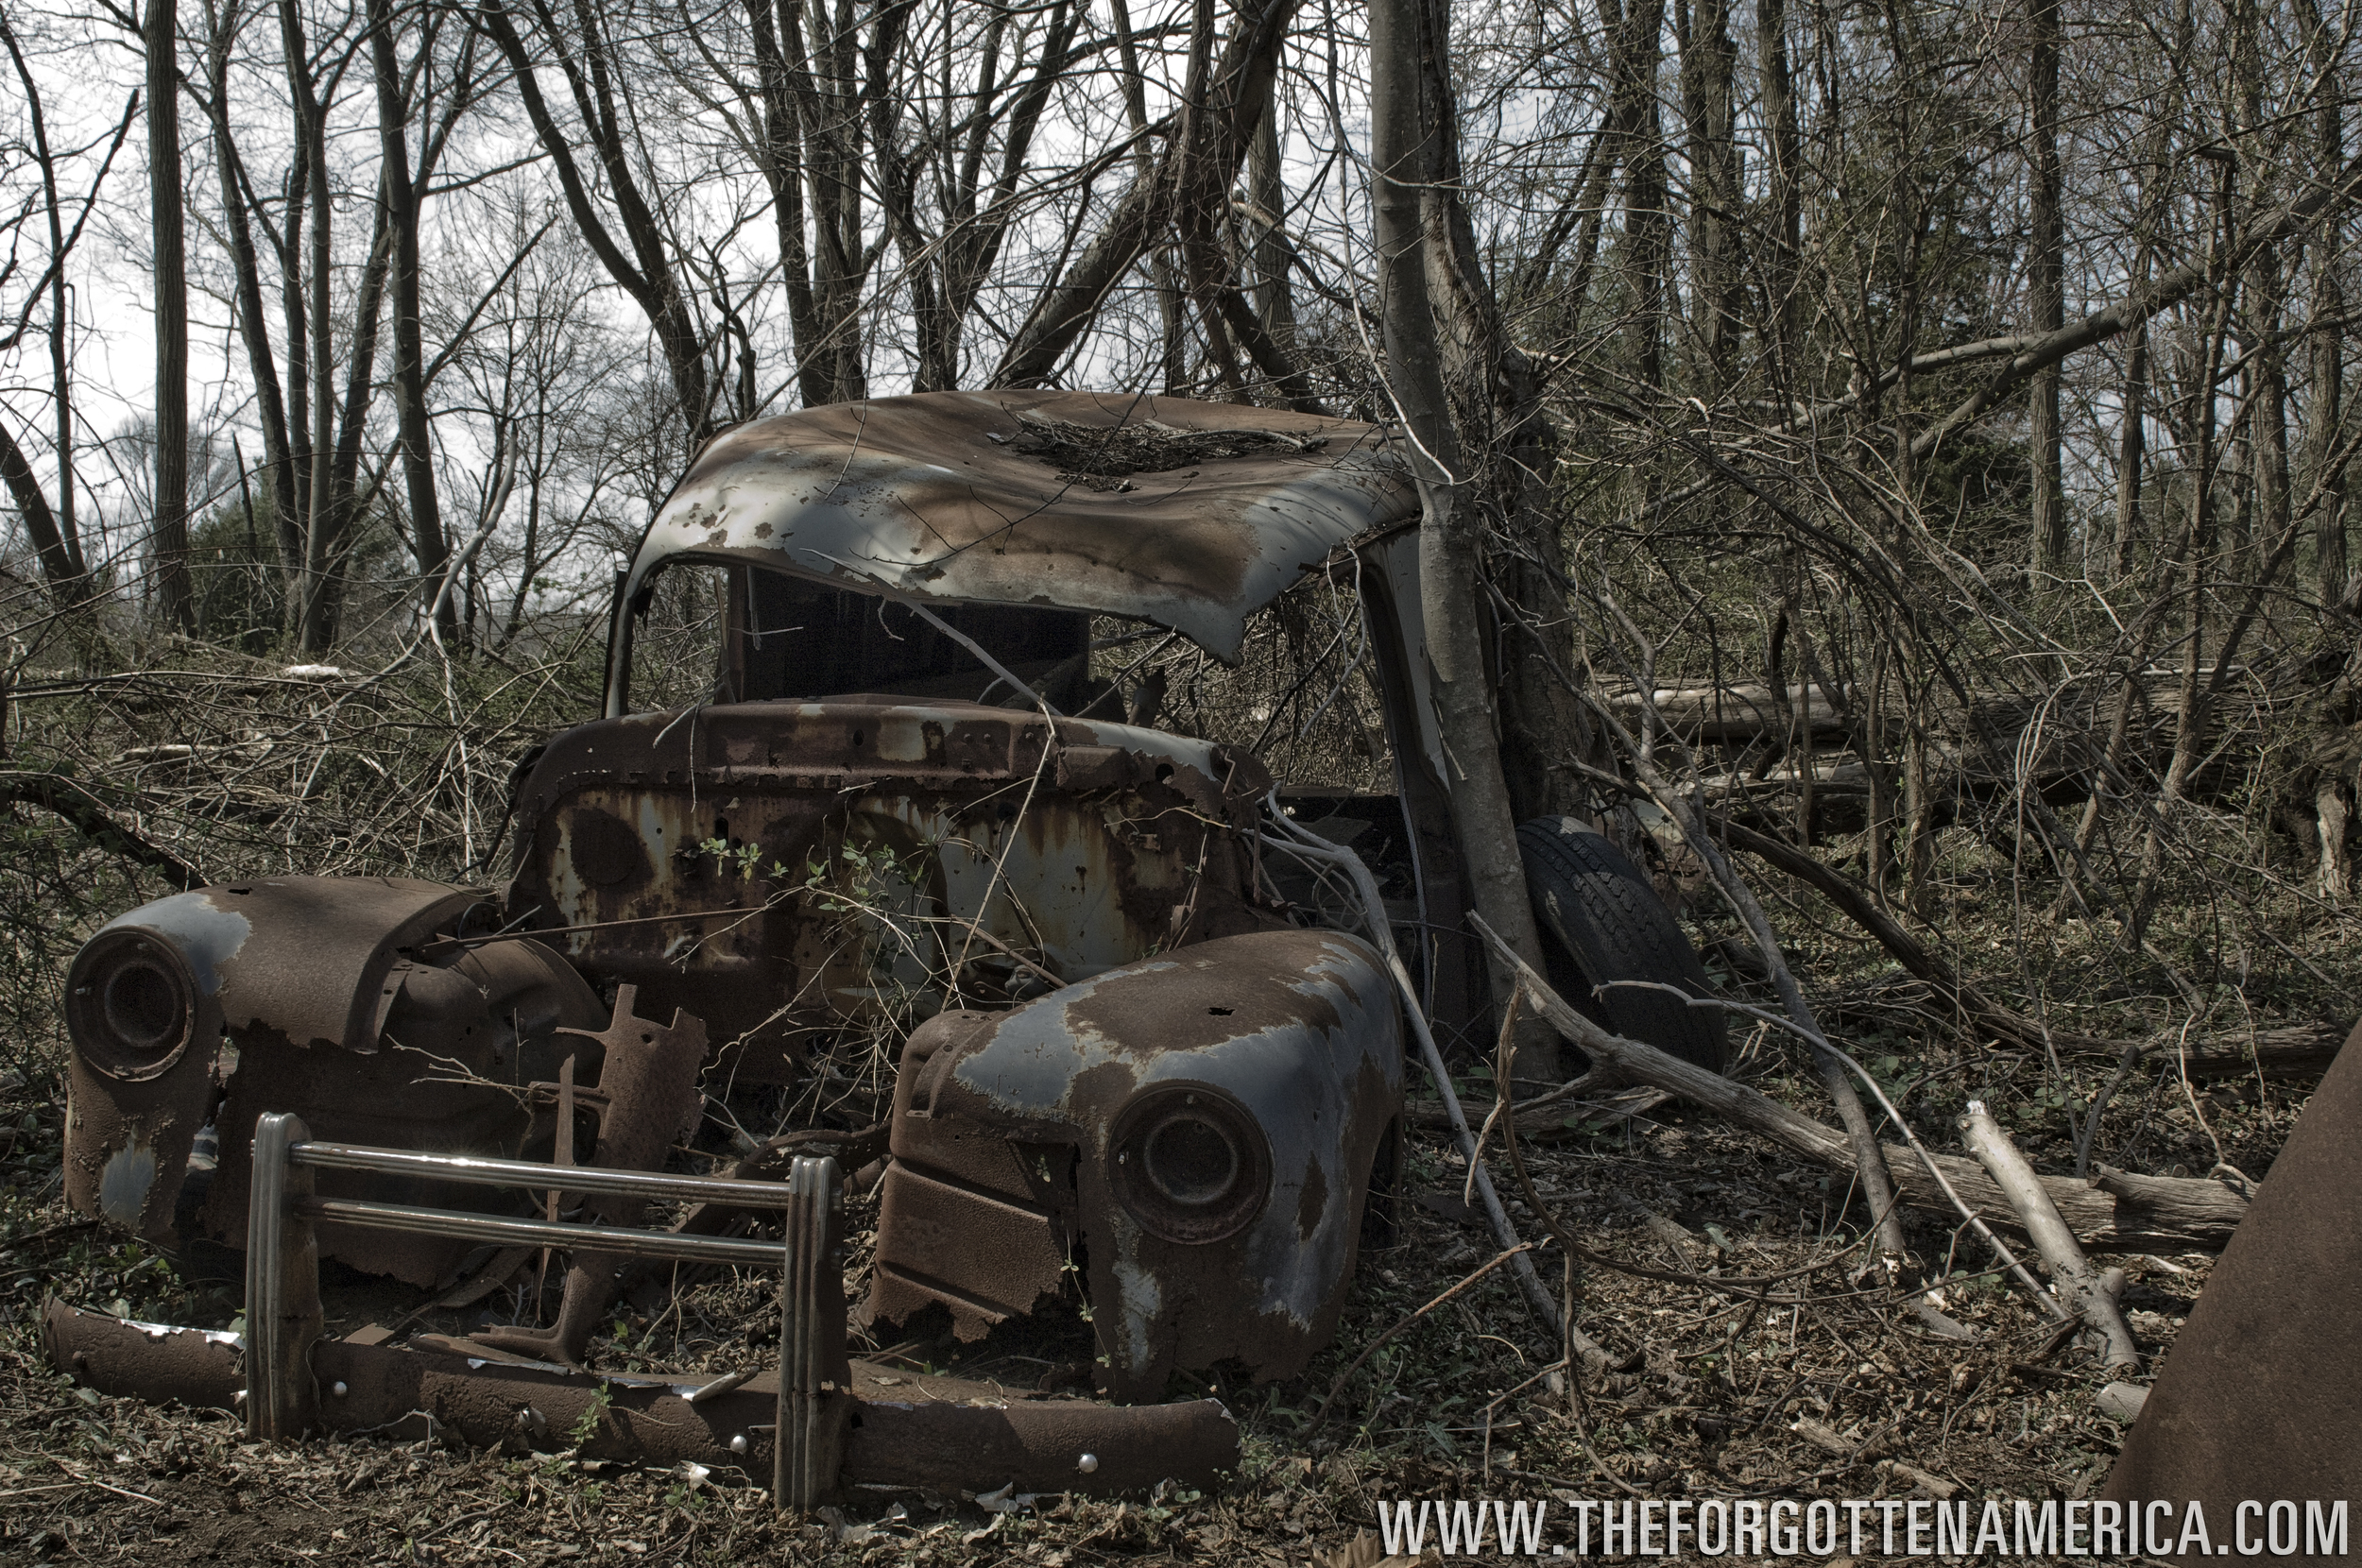 A vacant chevy sits in the woods to decay and rust. Marlboro, New Jersey